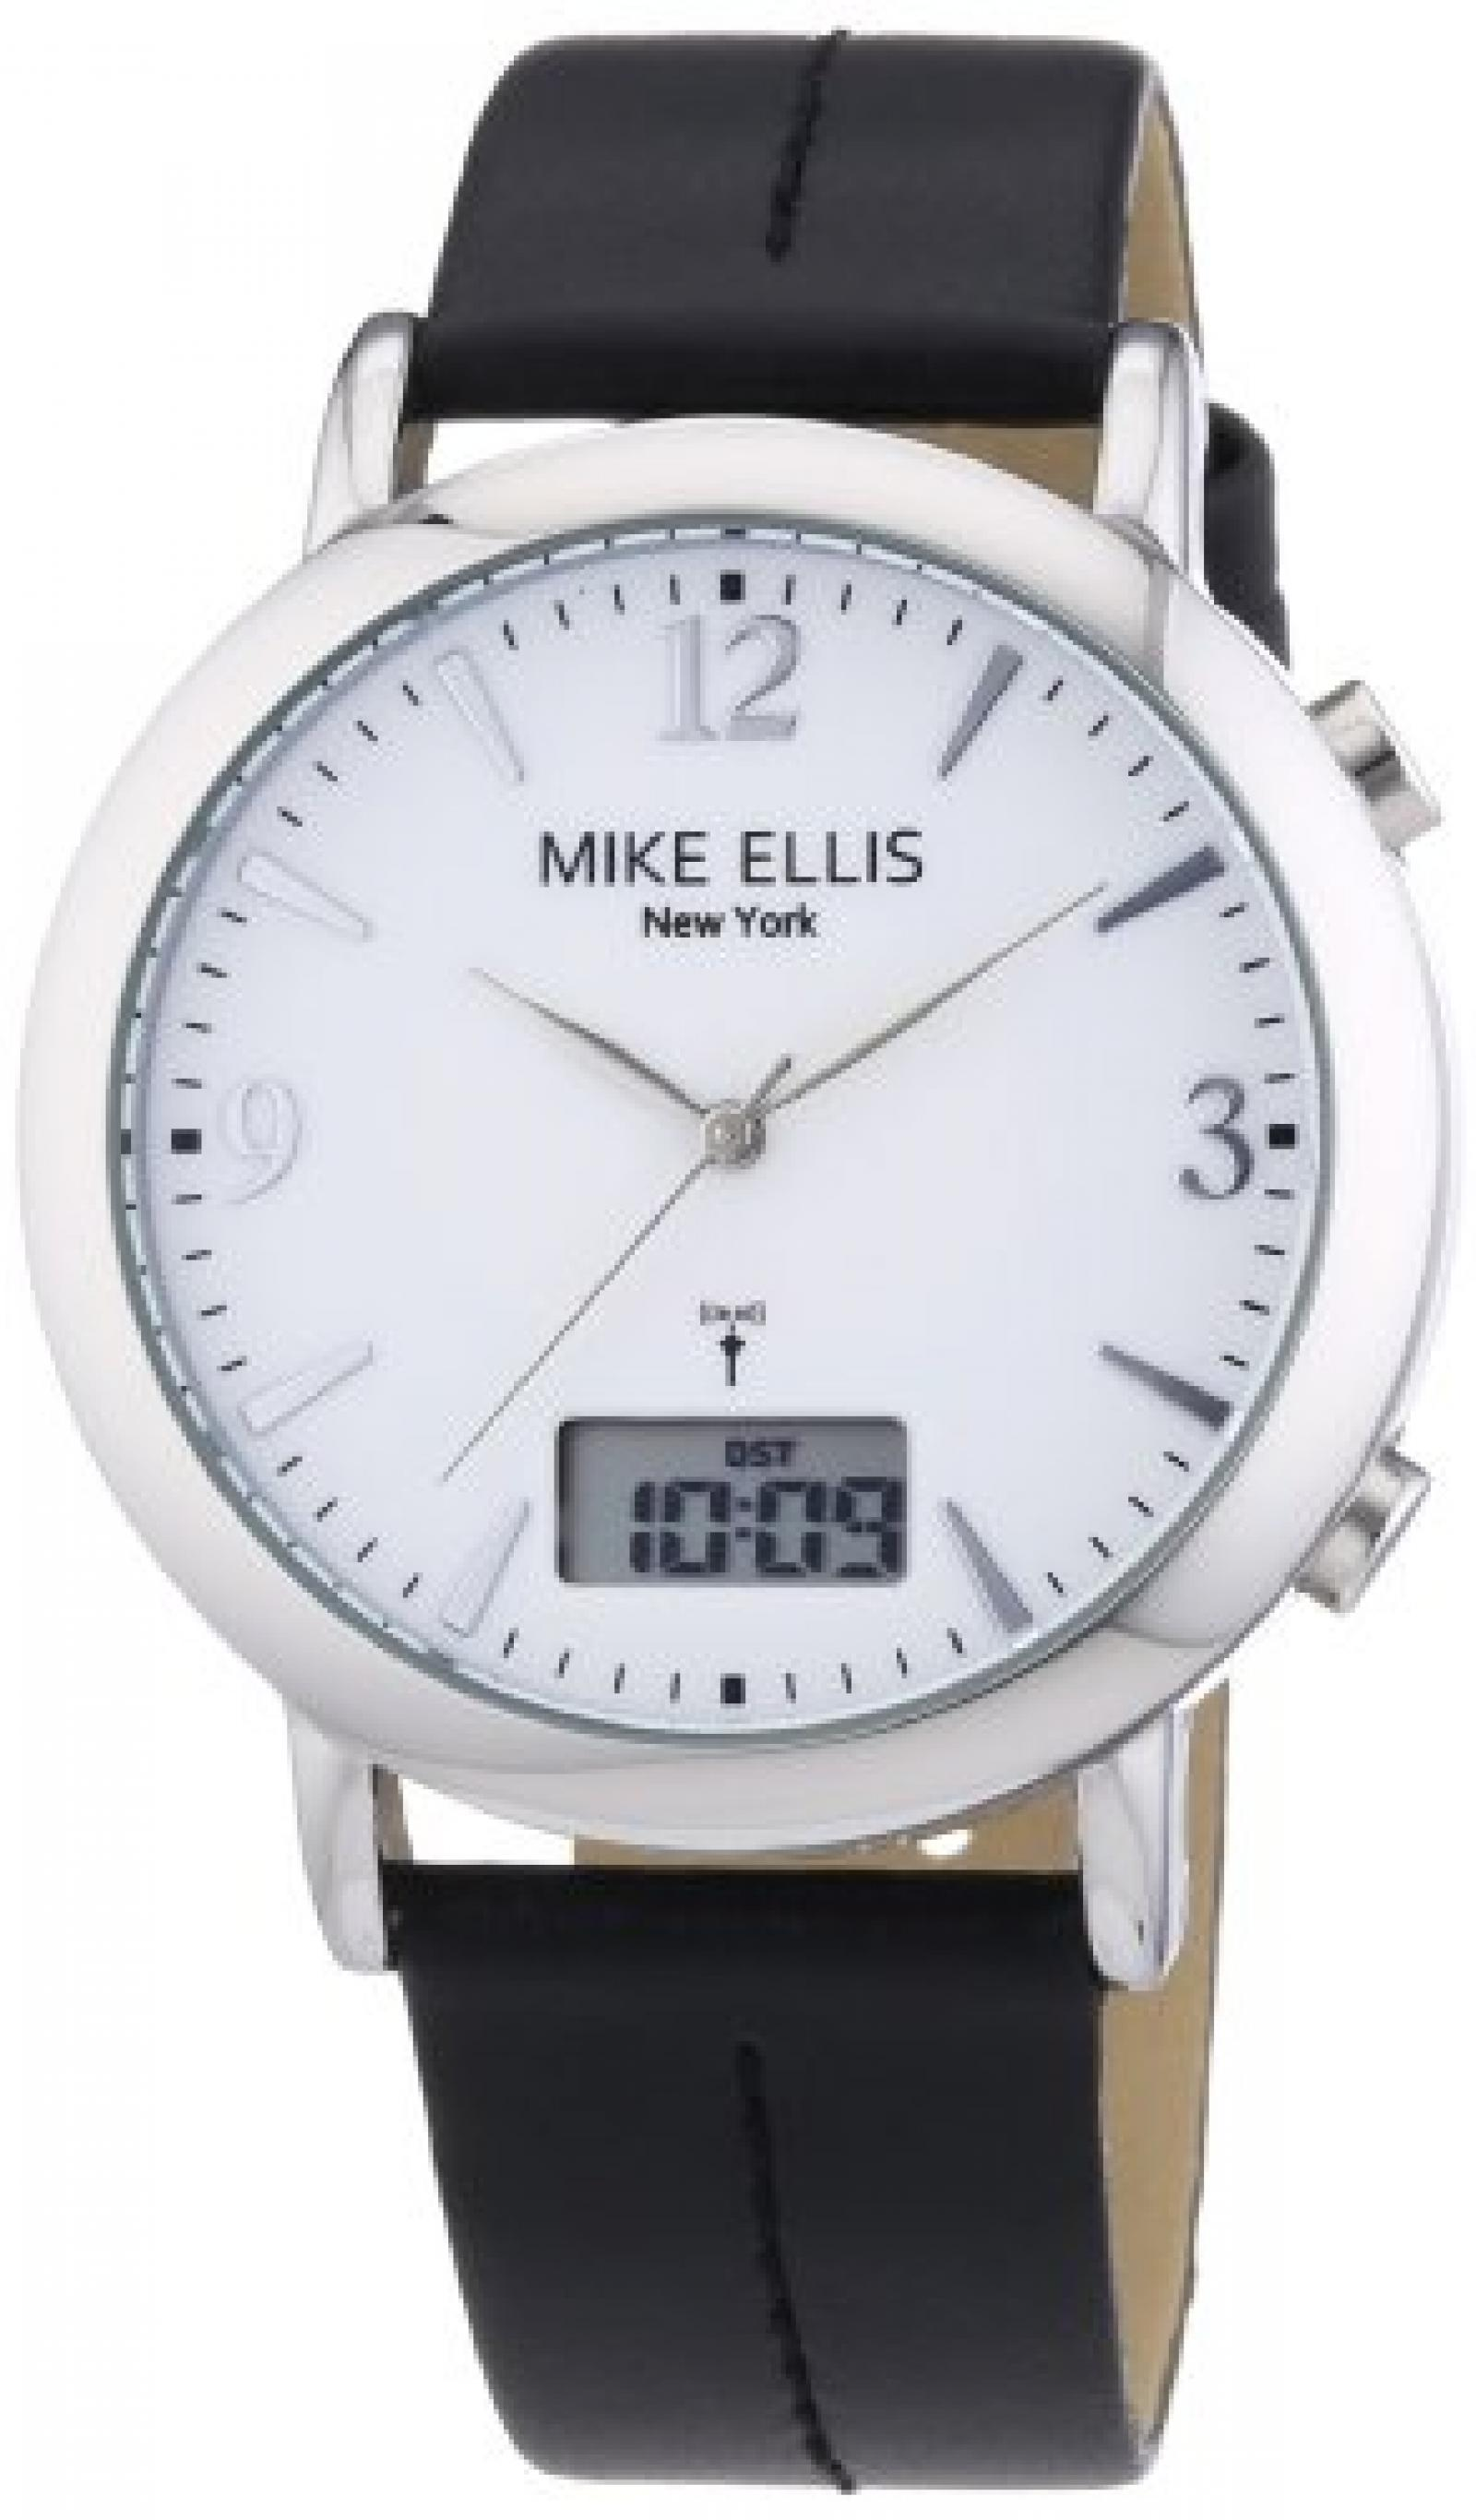 Mike Ellis New York Herren-Armbanduhr XS Analog - Digital Quarz M2942ASU/1